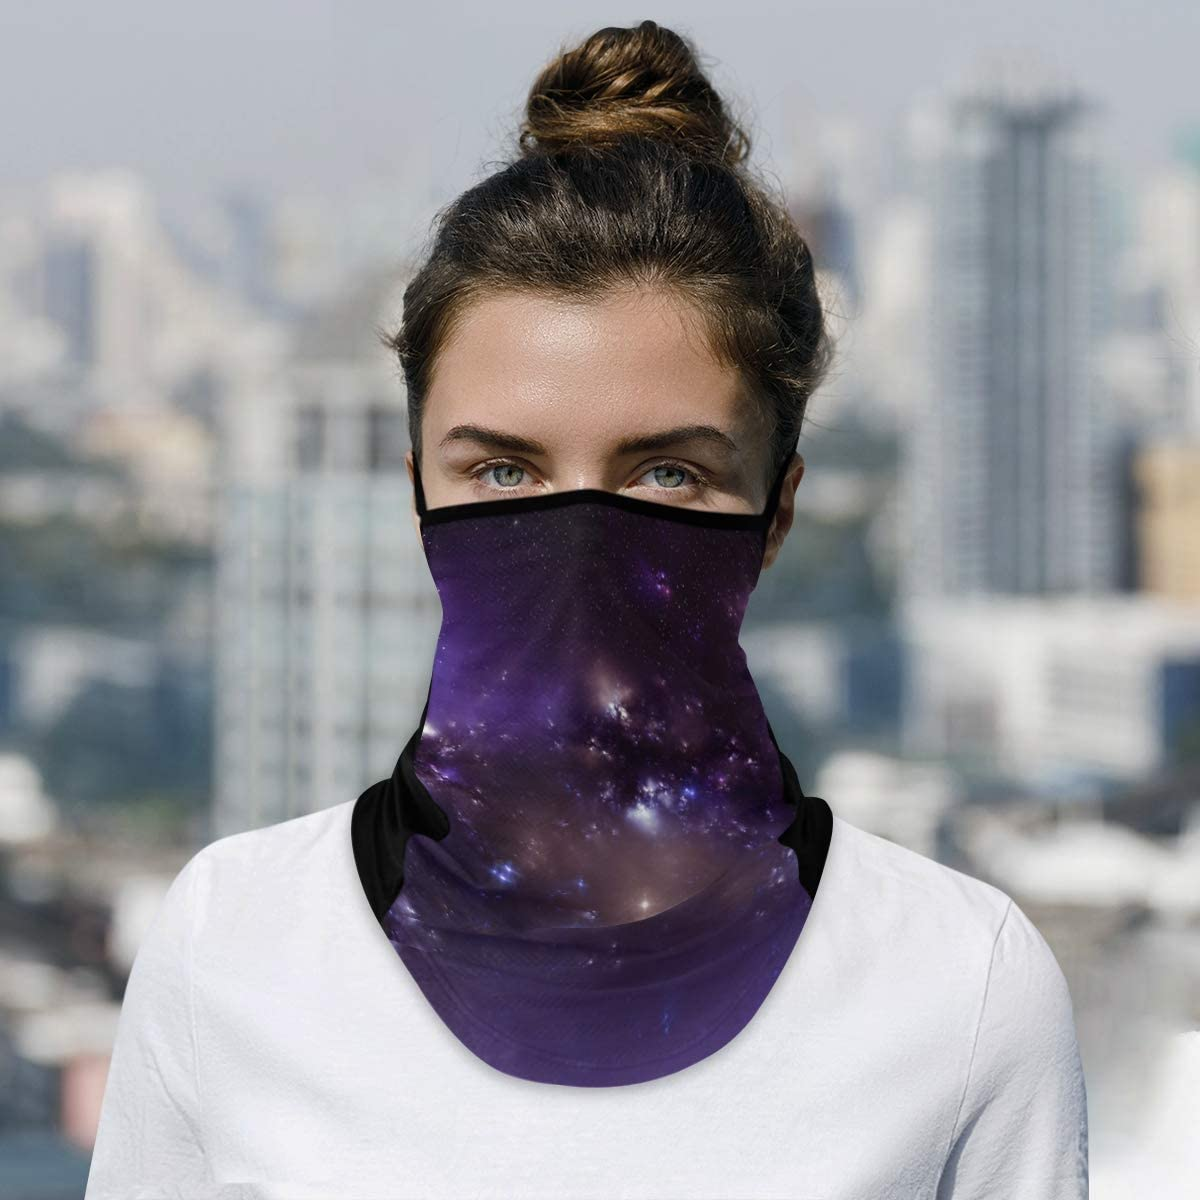 DAOXIANG Recommended Starry Sky San Jose Mall Neck Gaiter Reusable Face Cloth M Mask